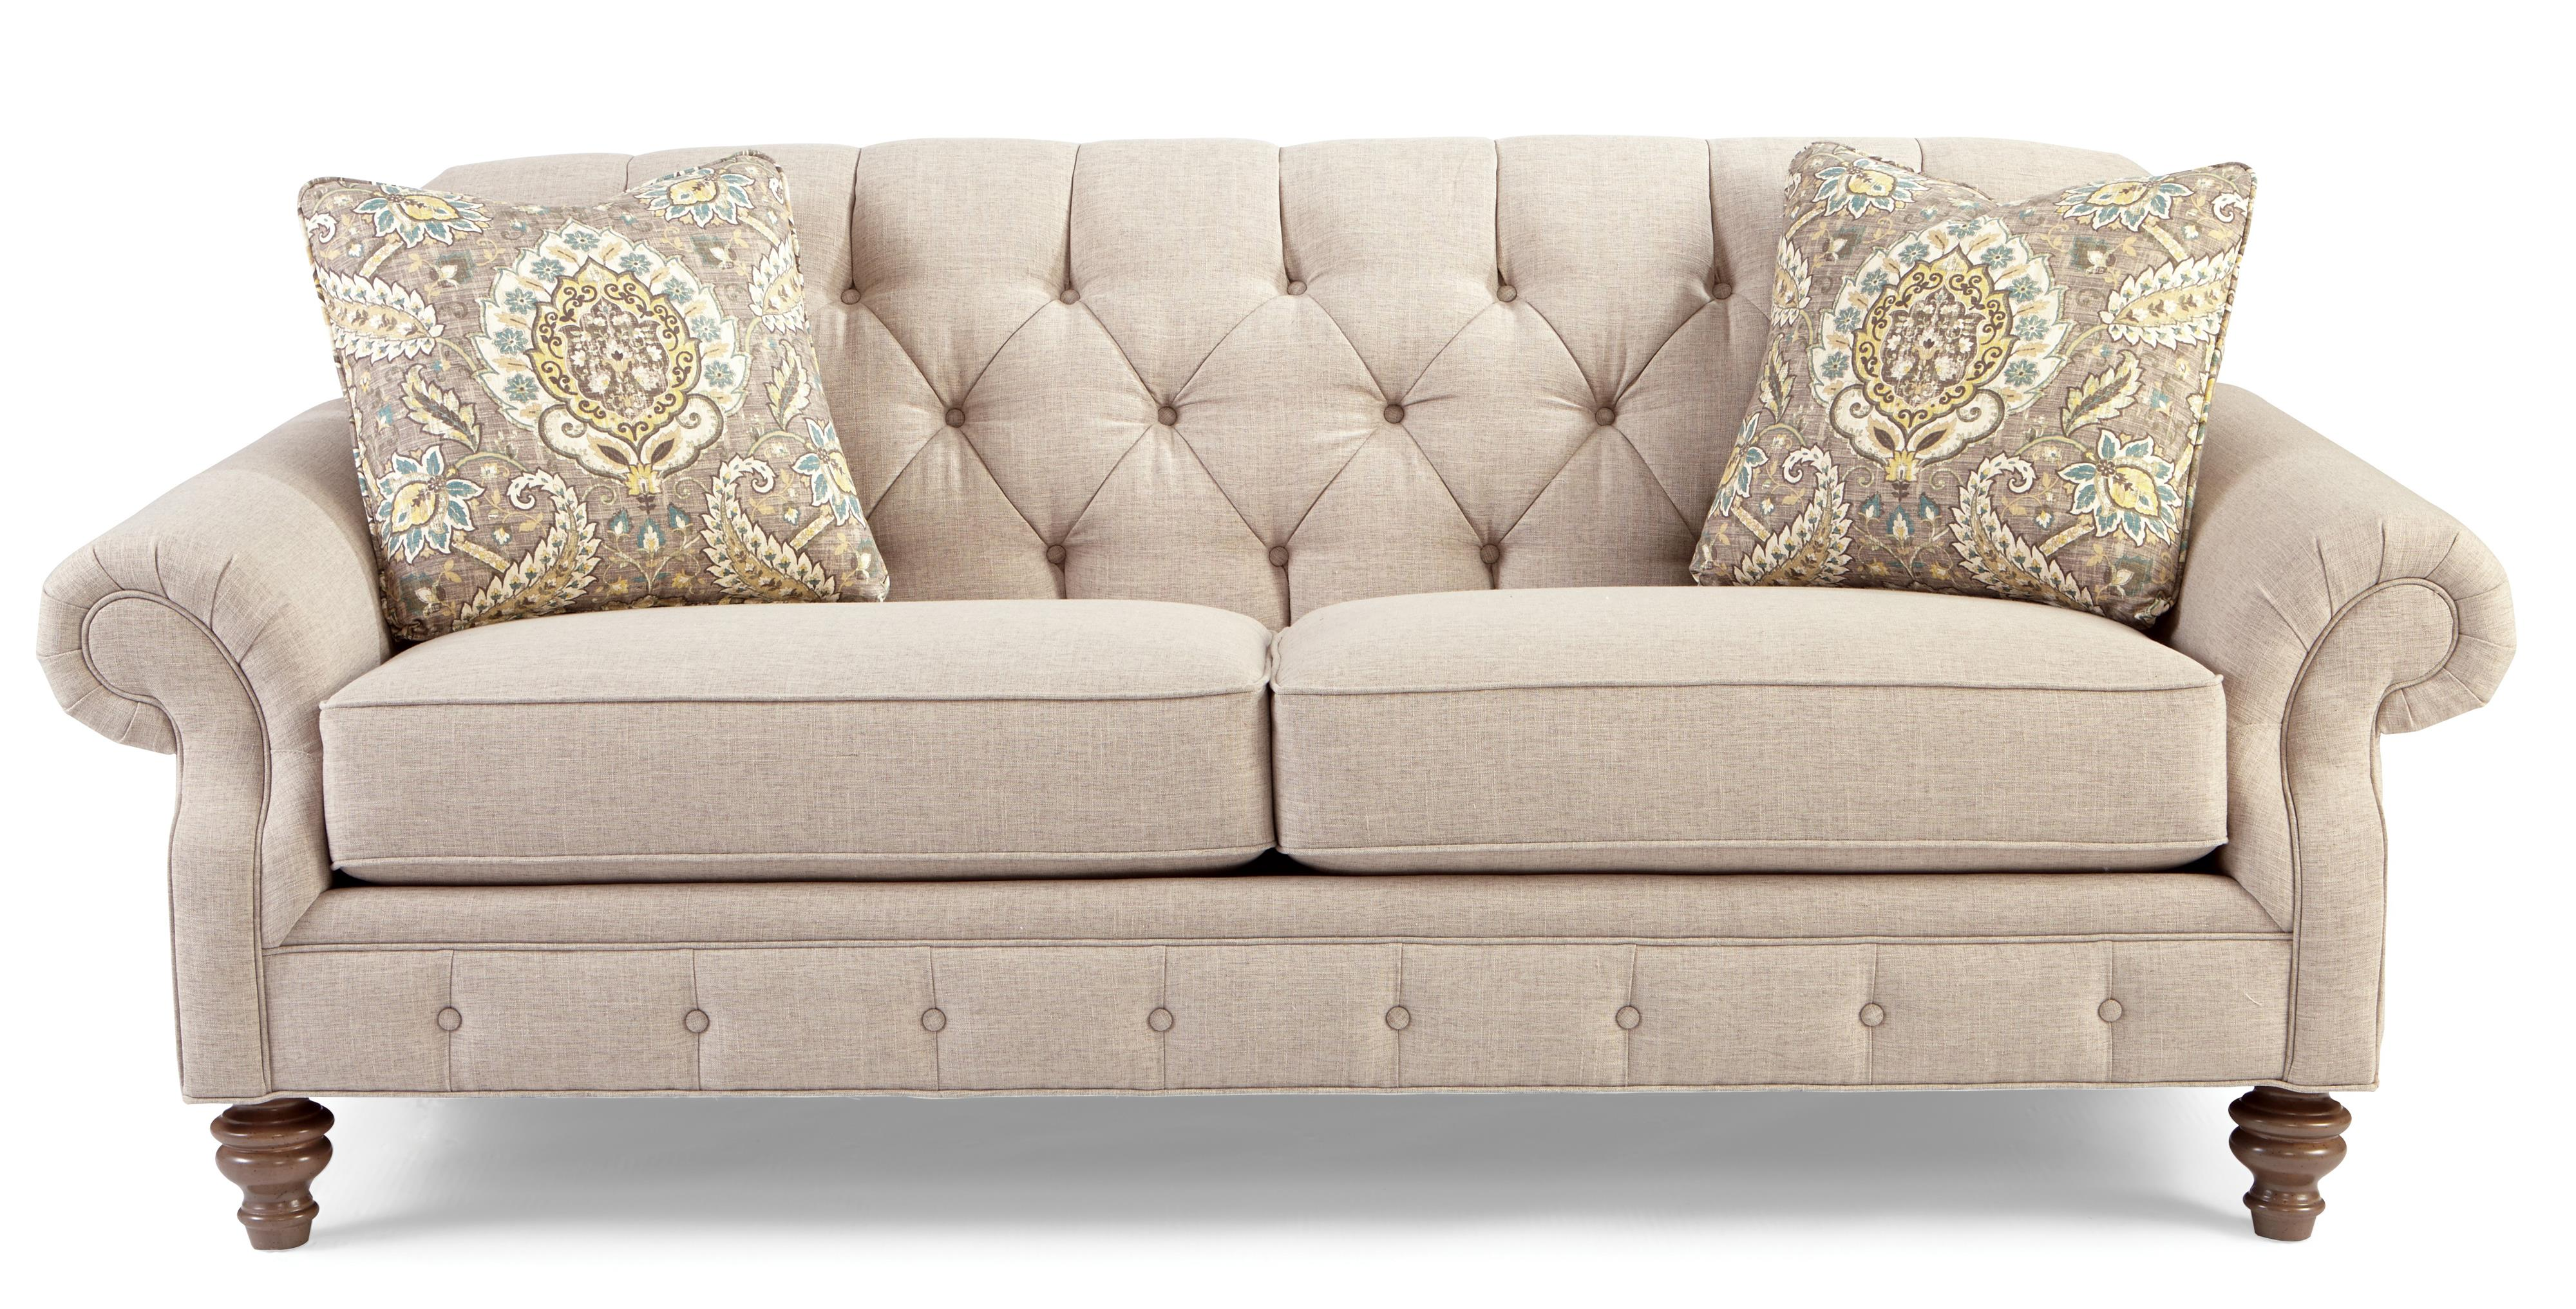 tufted sofas traditional button-tufted sofa with wide flared arms HTLEDBH